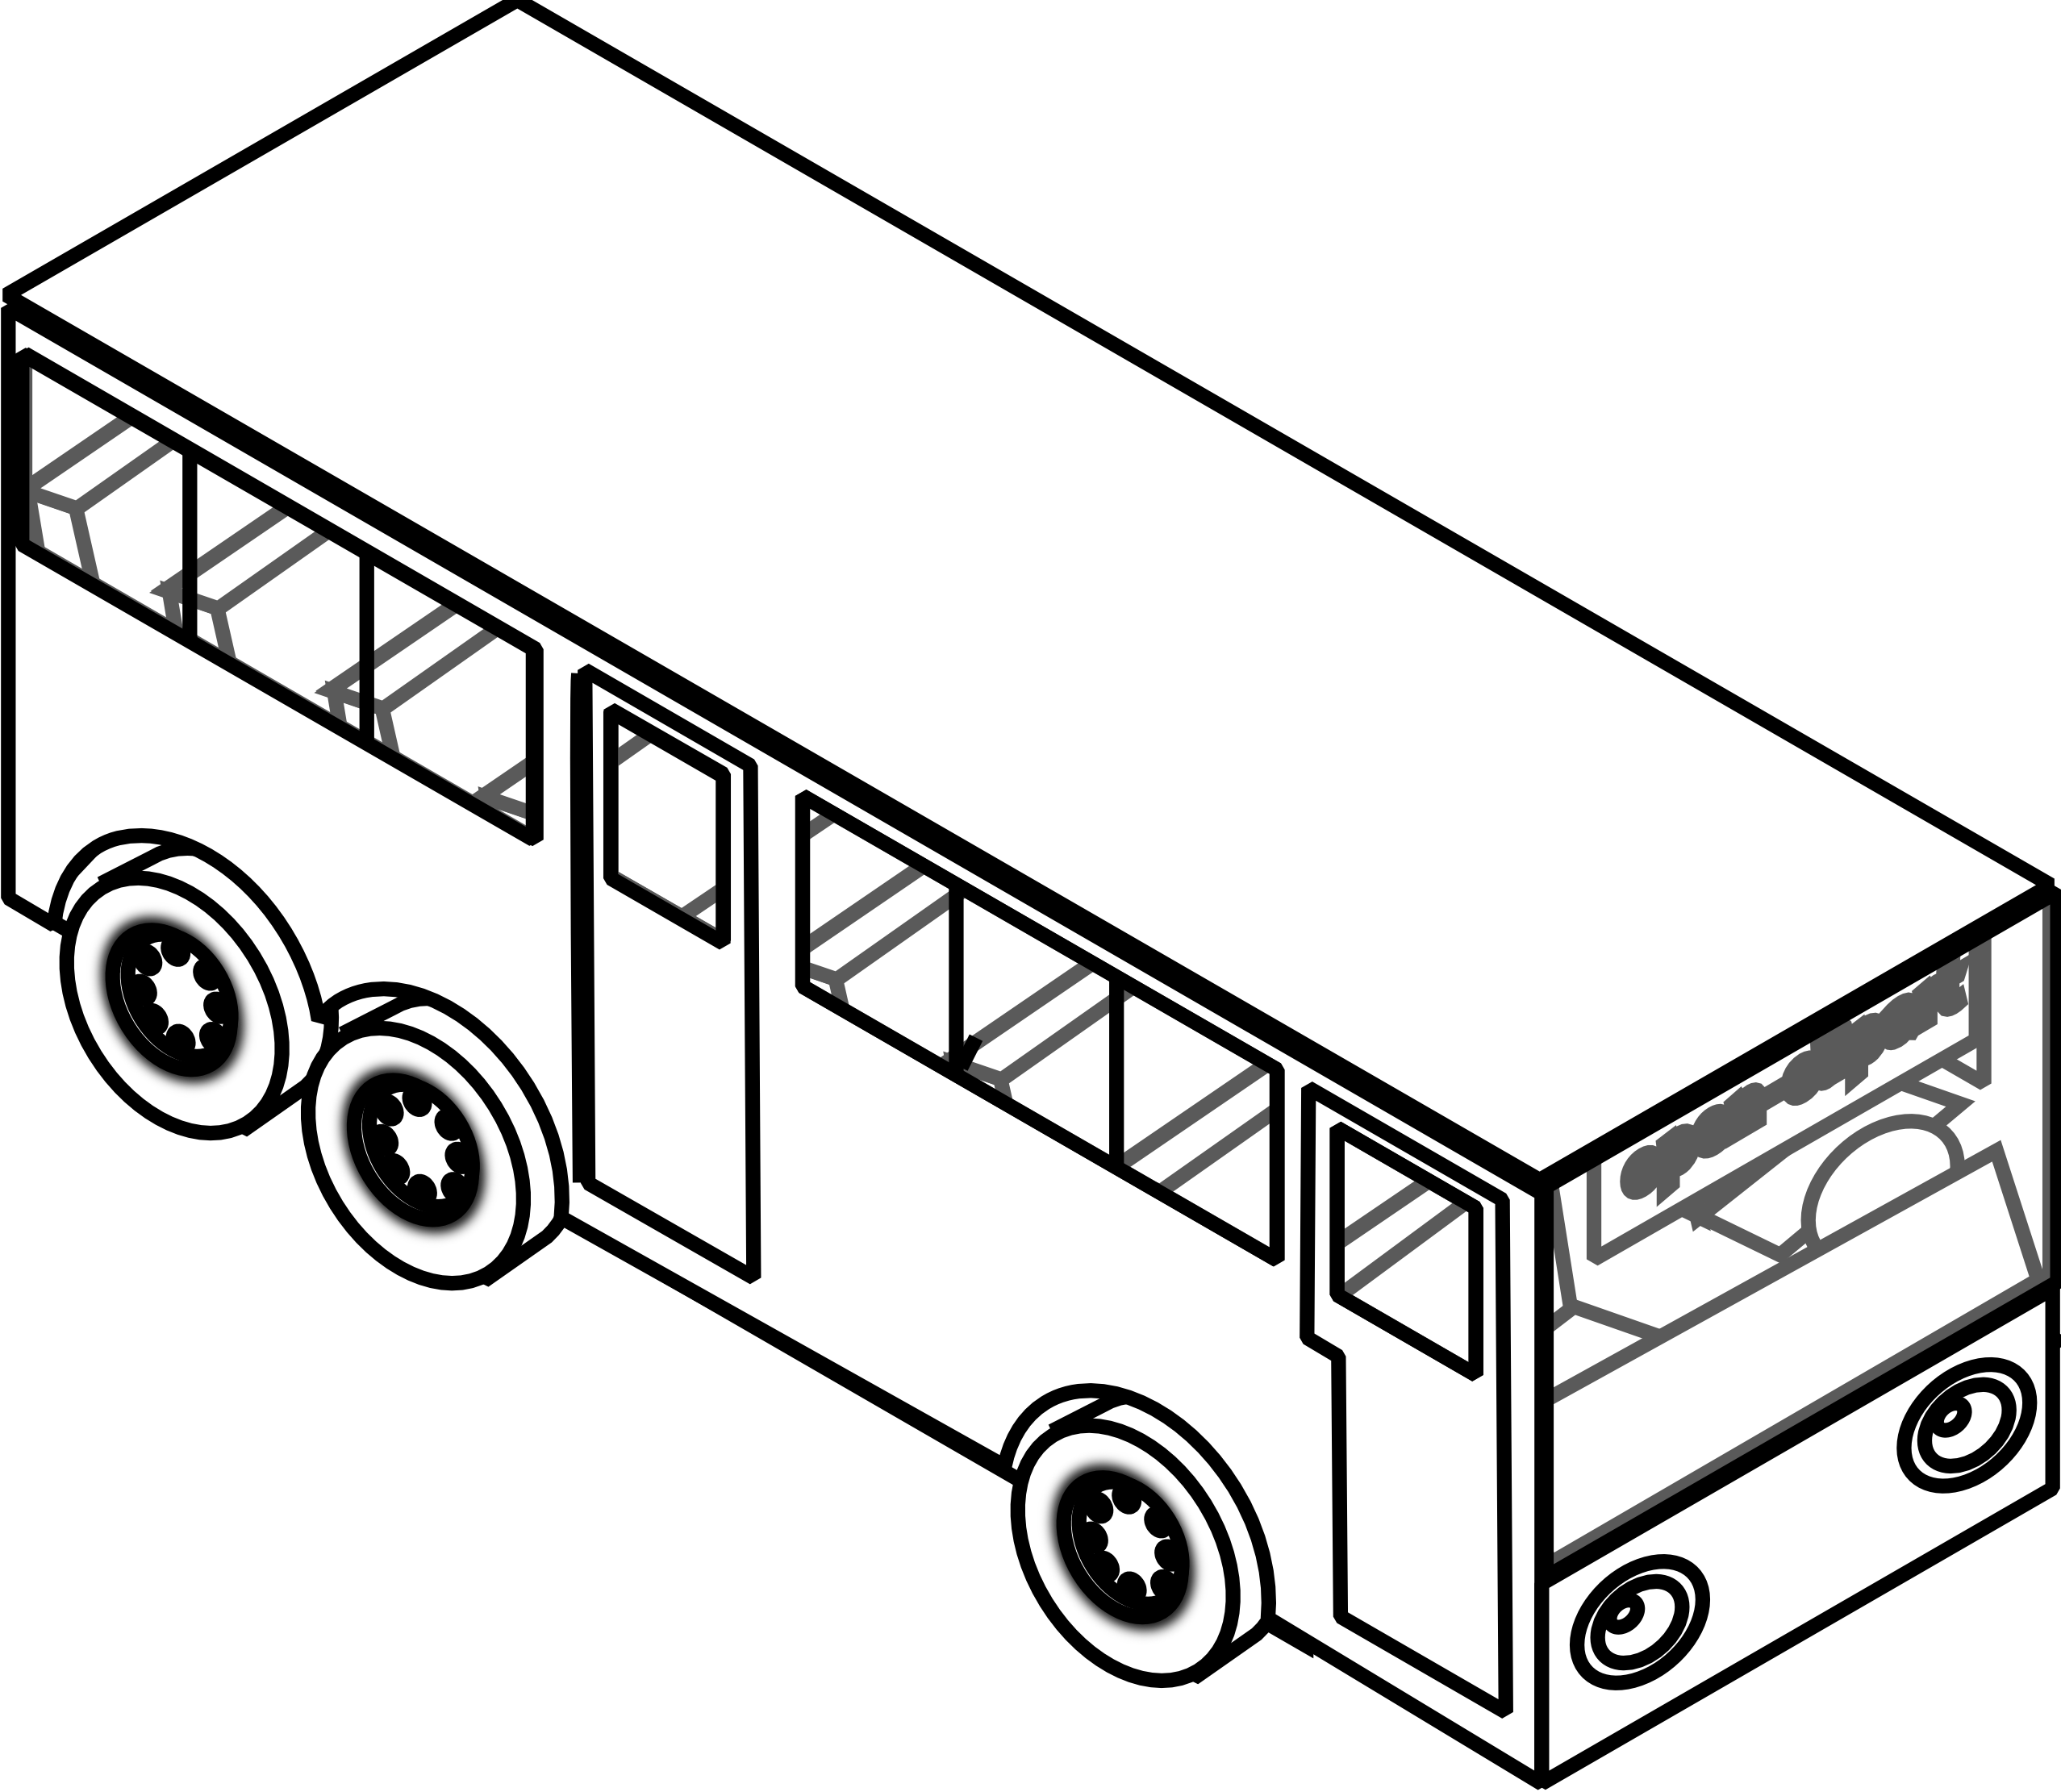 2555x2222 Best Bus Clipart Black And White